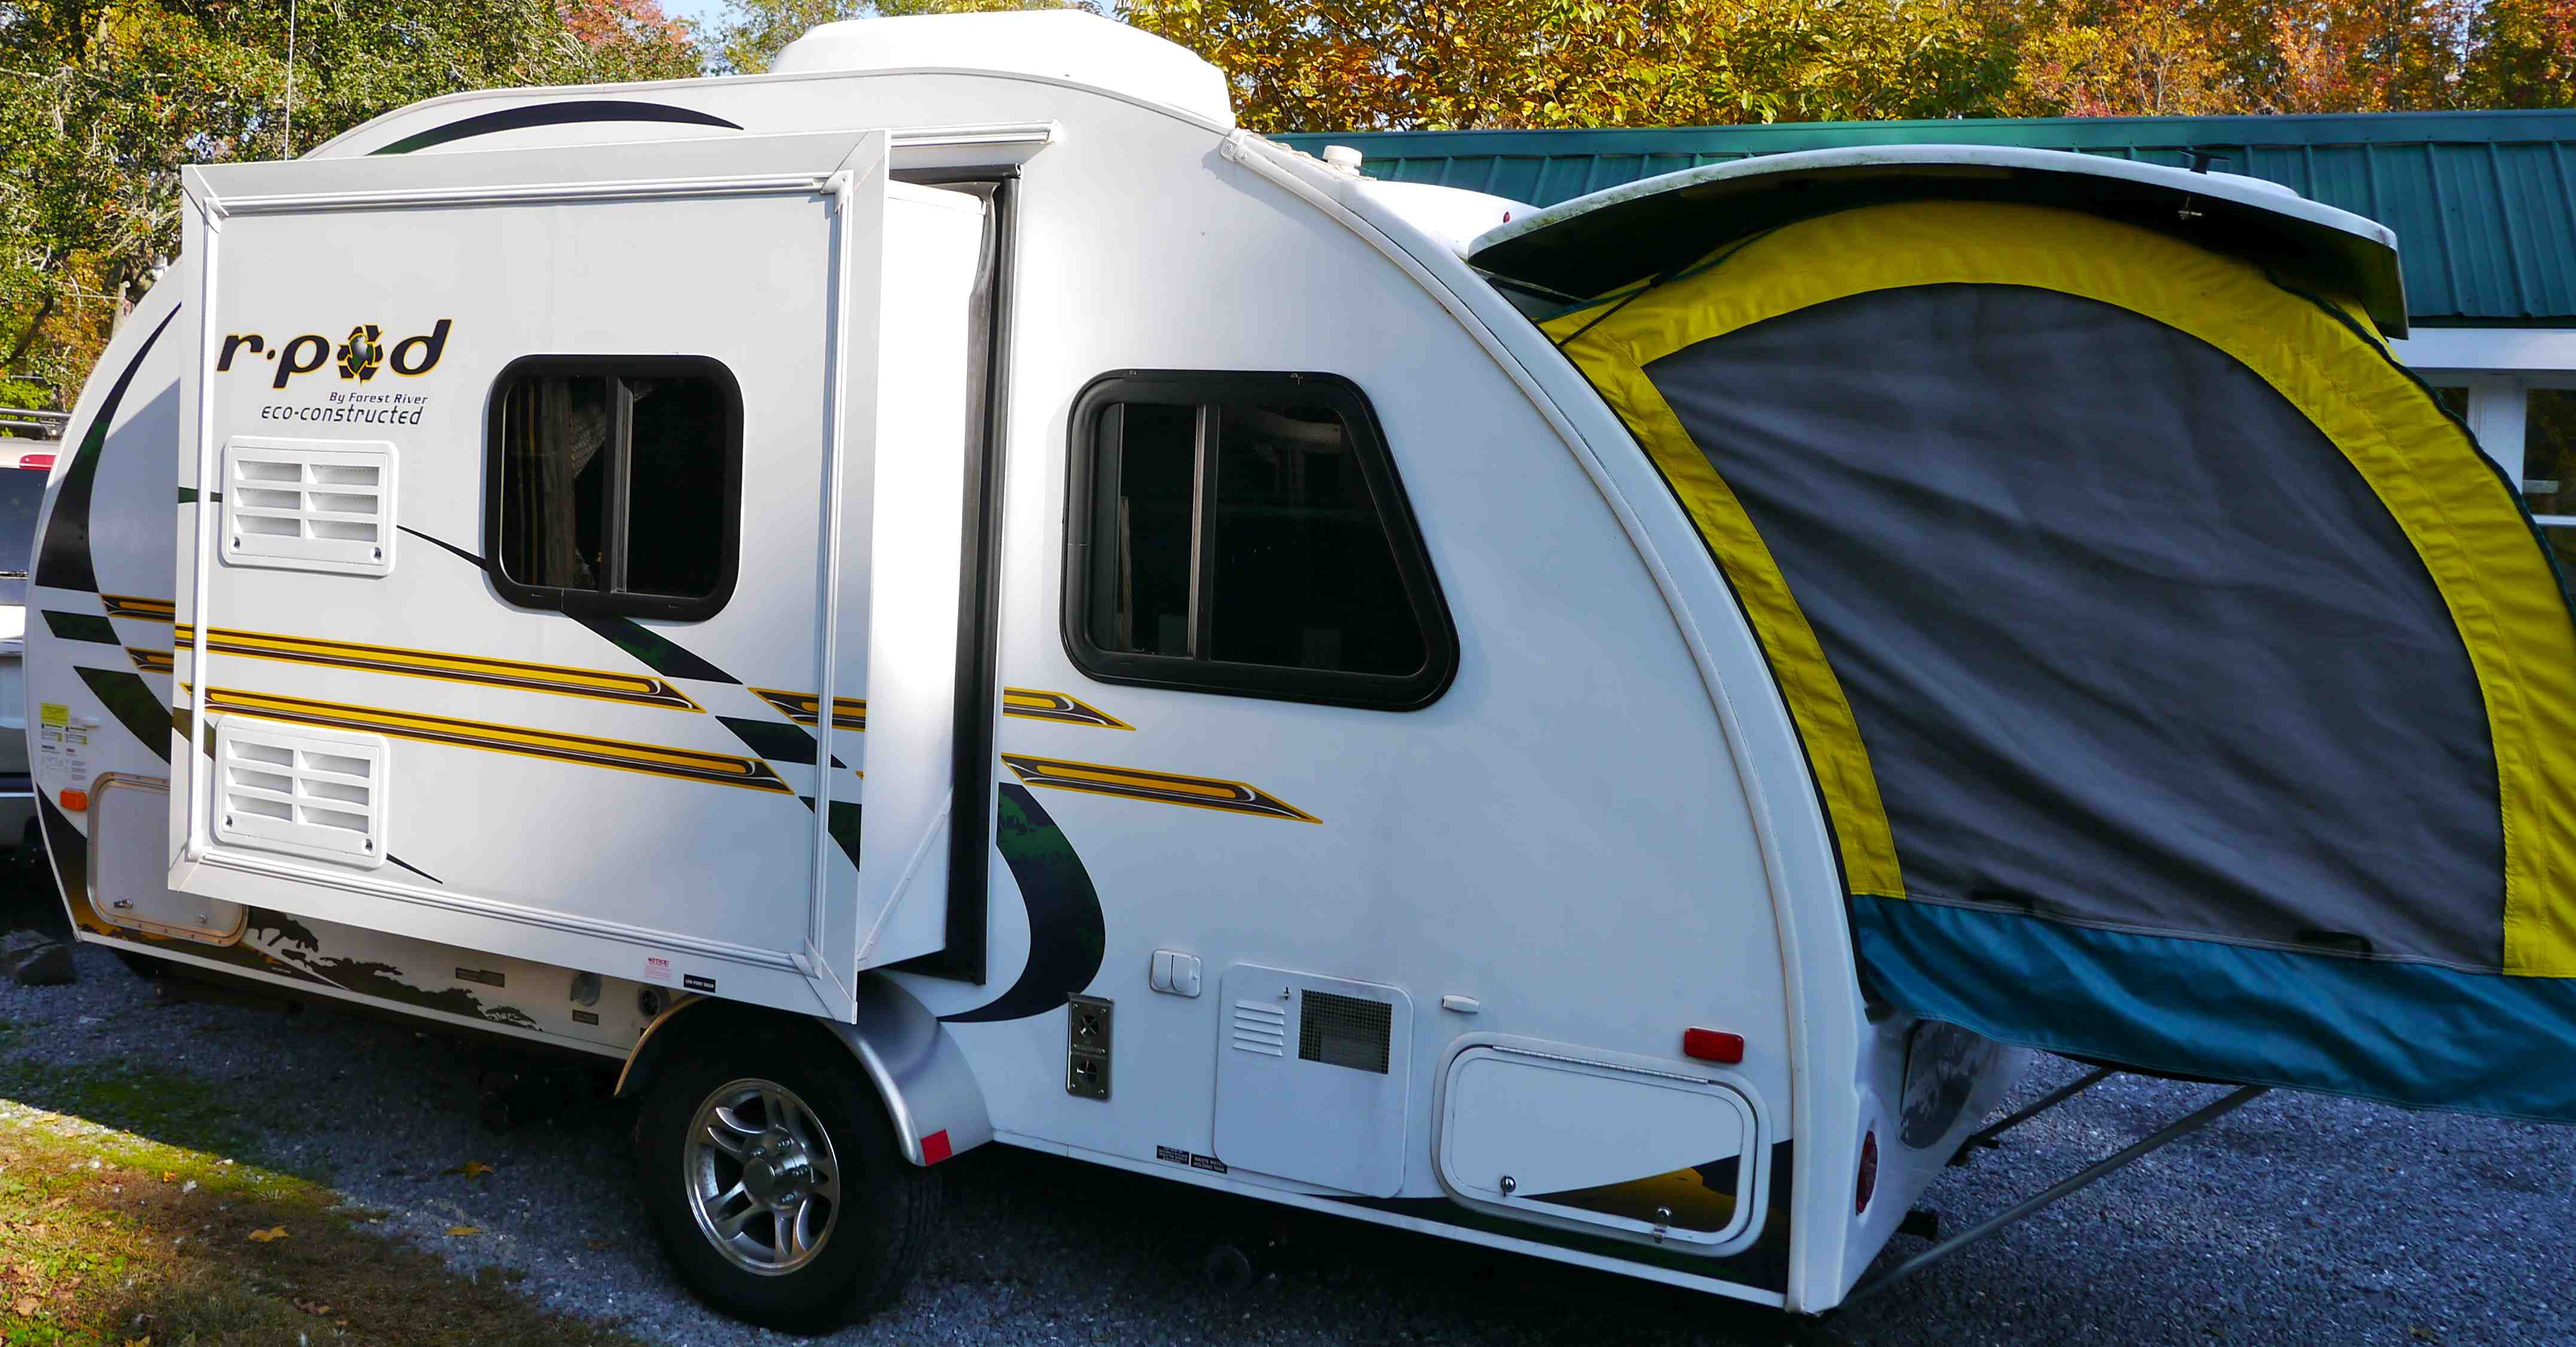 Rpod For Sale >> Forest River R Pod Rv Reviews By Owners | Autos Post